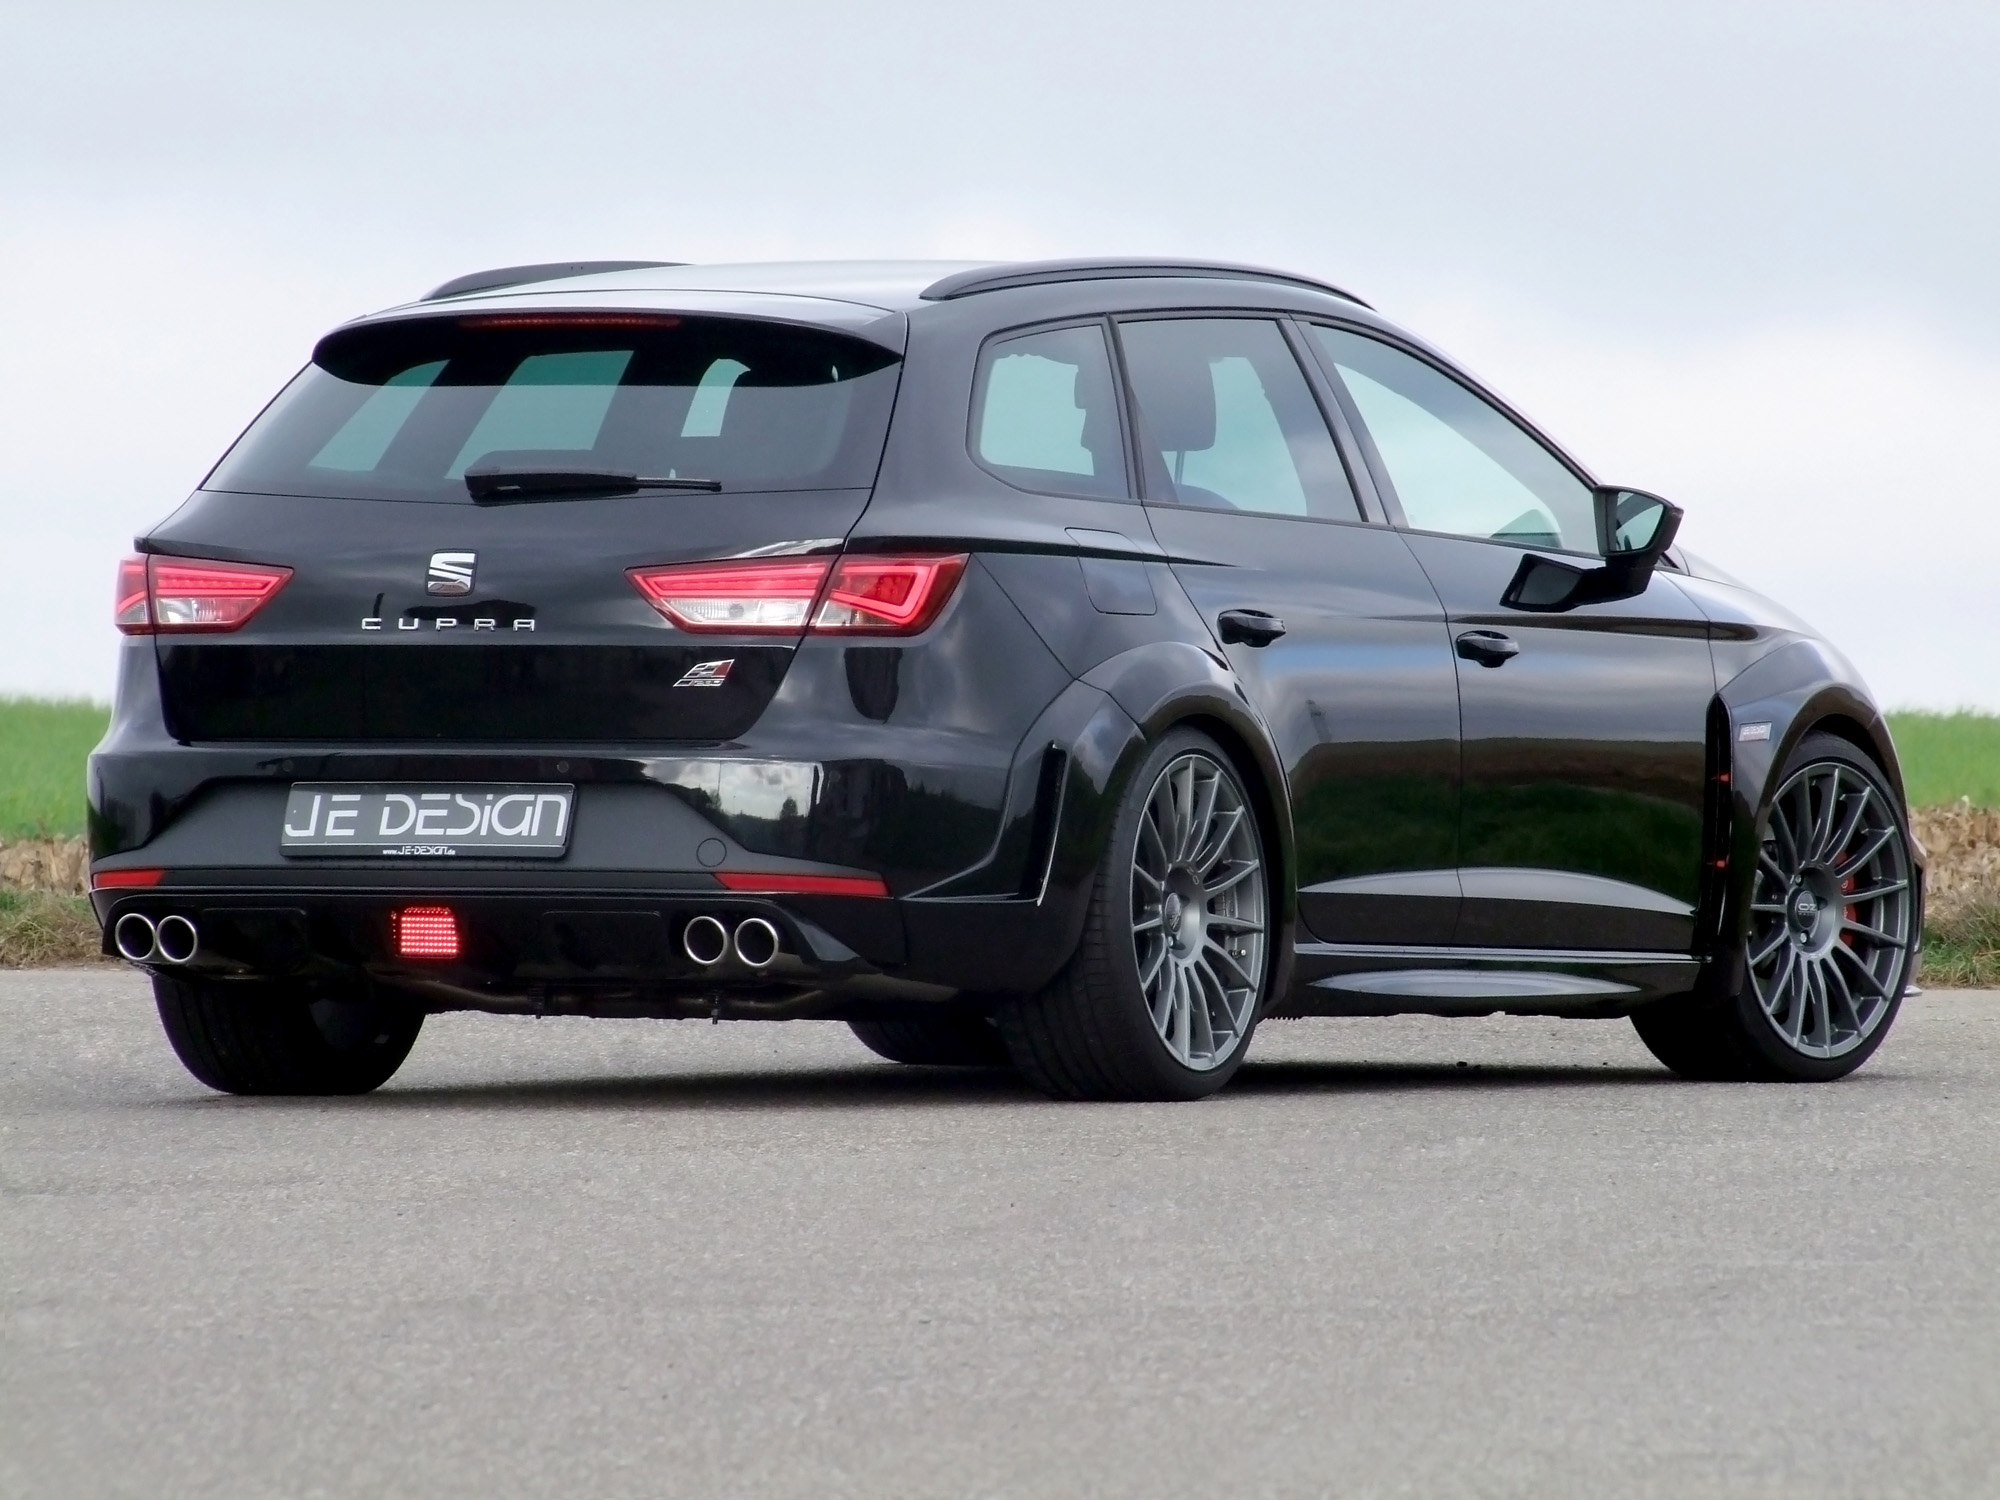 seat-leon-cupra-st-widebody-je-design-04